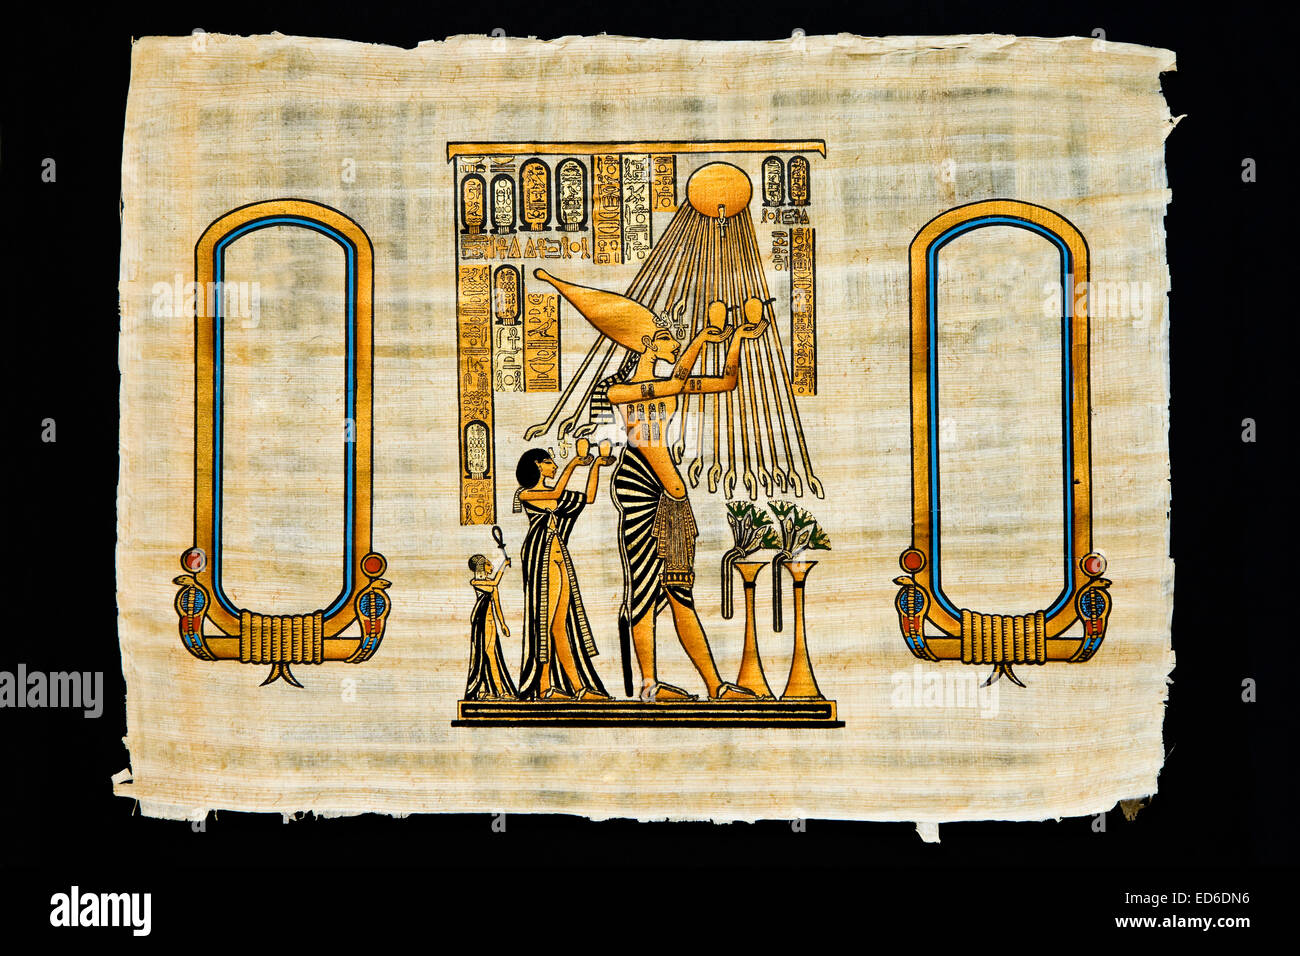 Sheet of Egyptian papyrus with ancient drawings, made in present days - Stock Image